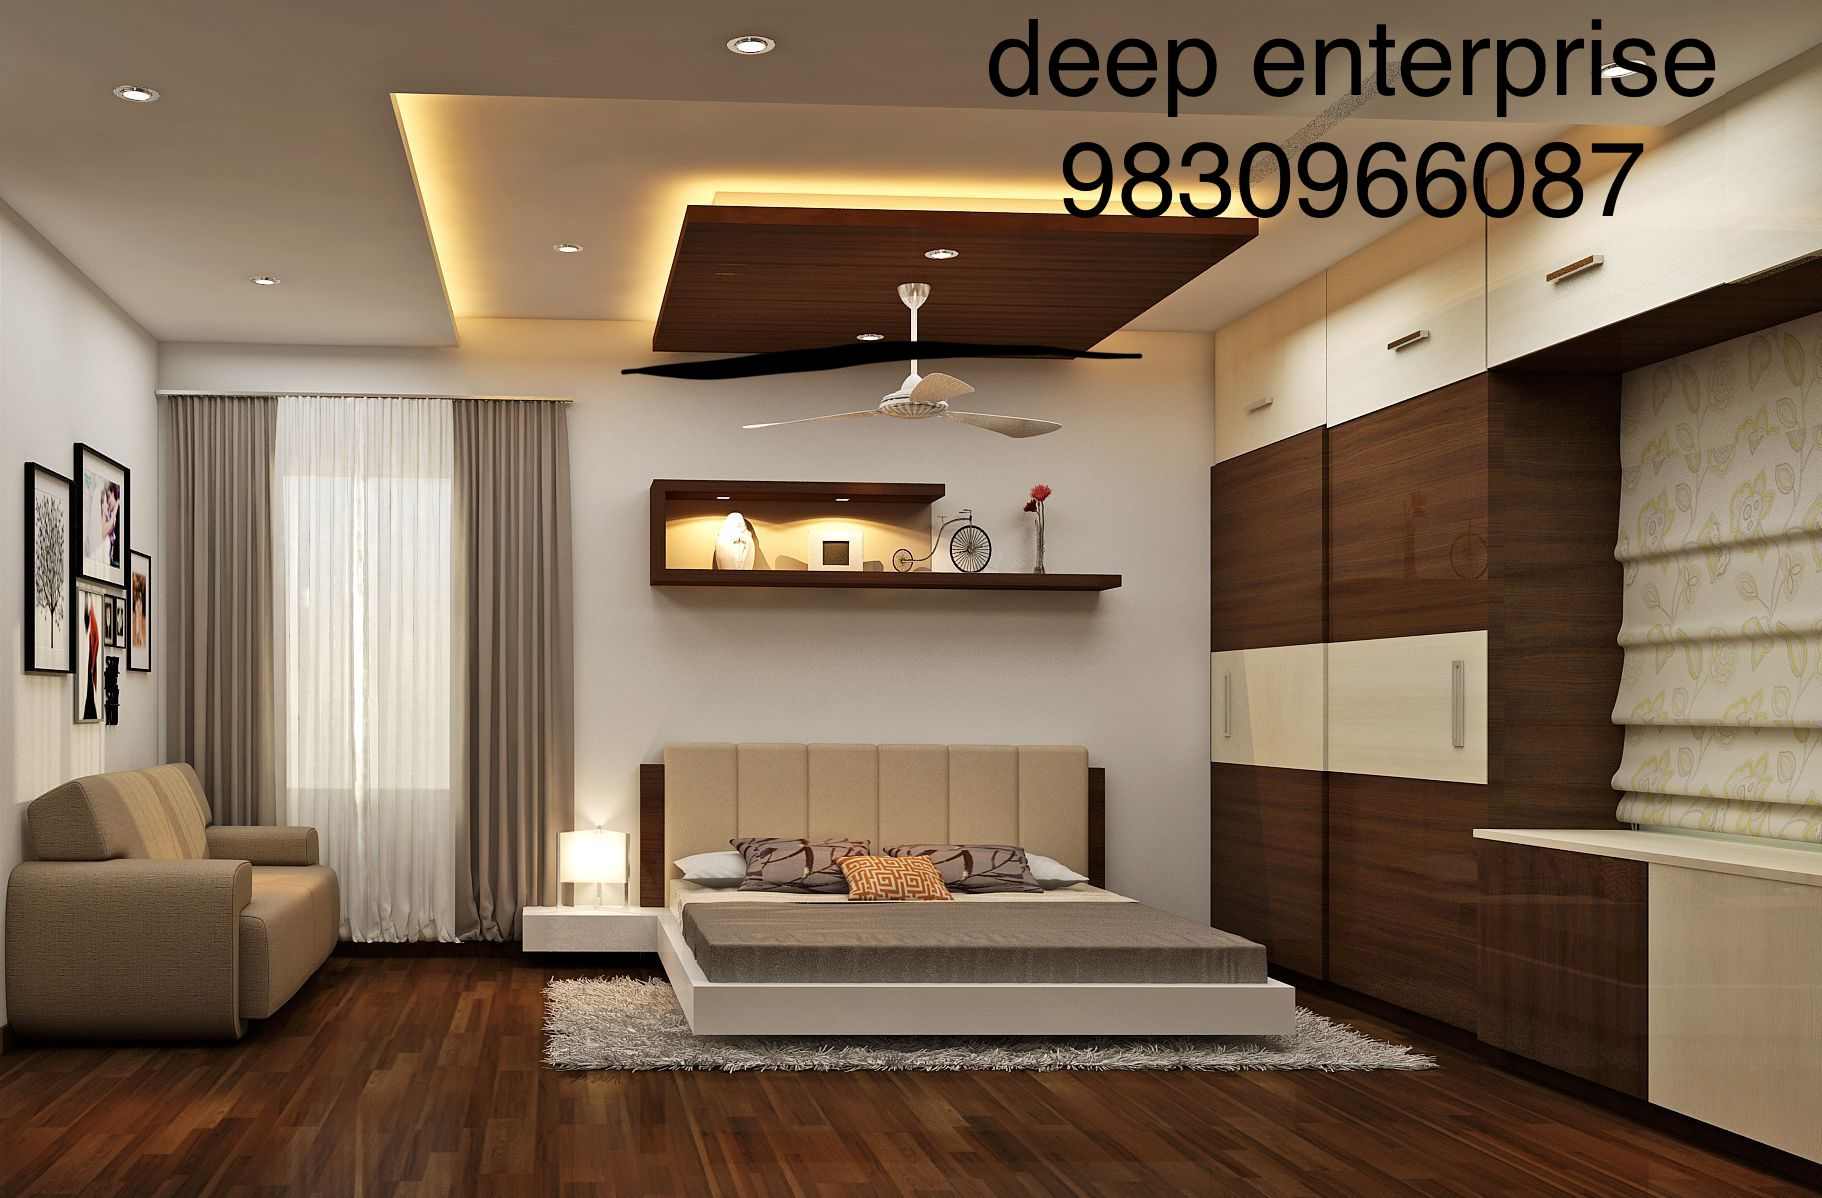 home decoration ,bedroom design , bedroom interior , bedroom falseceiling ,